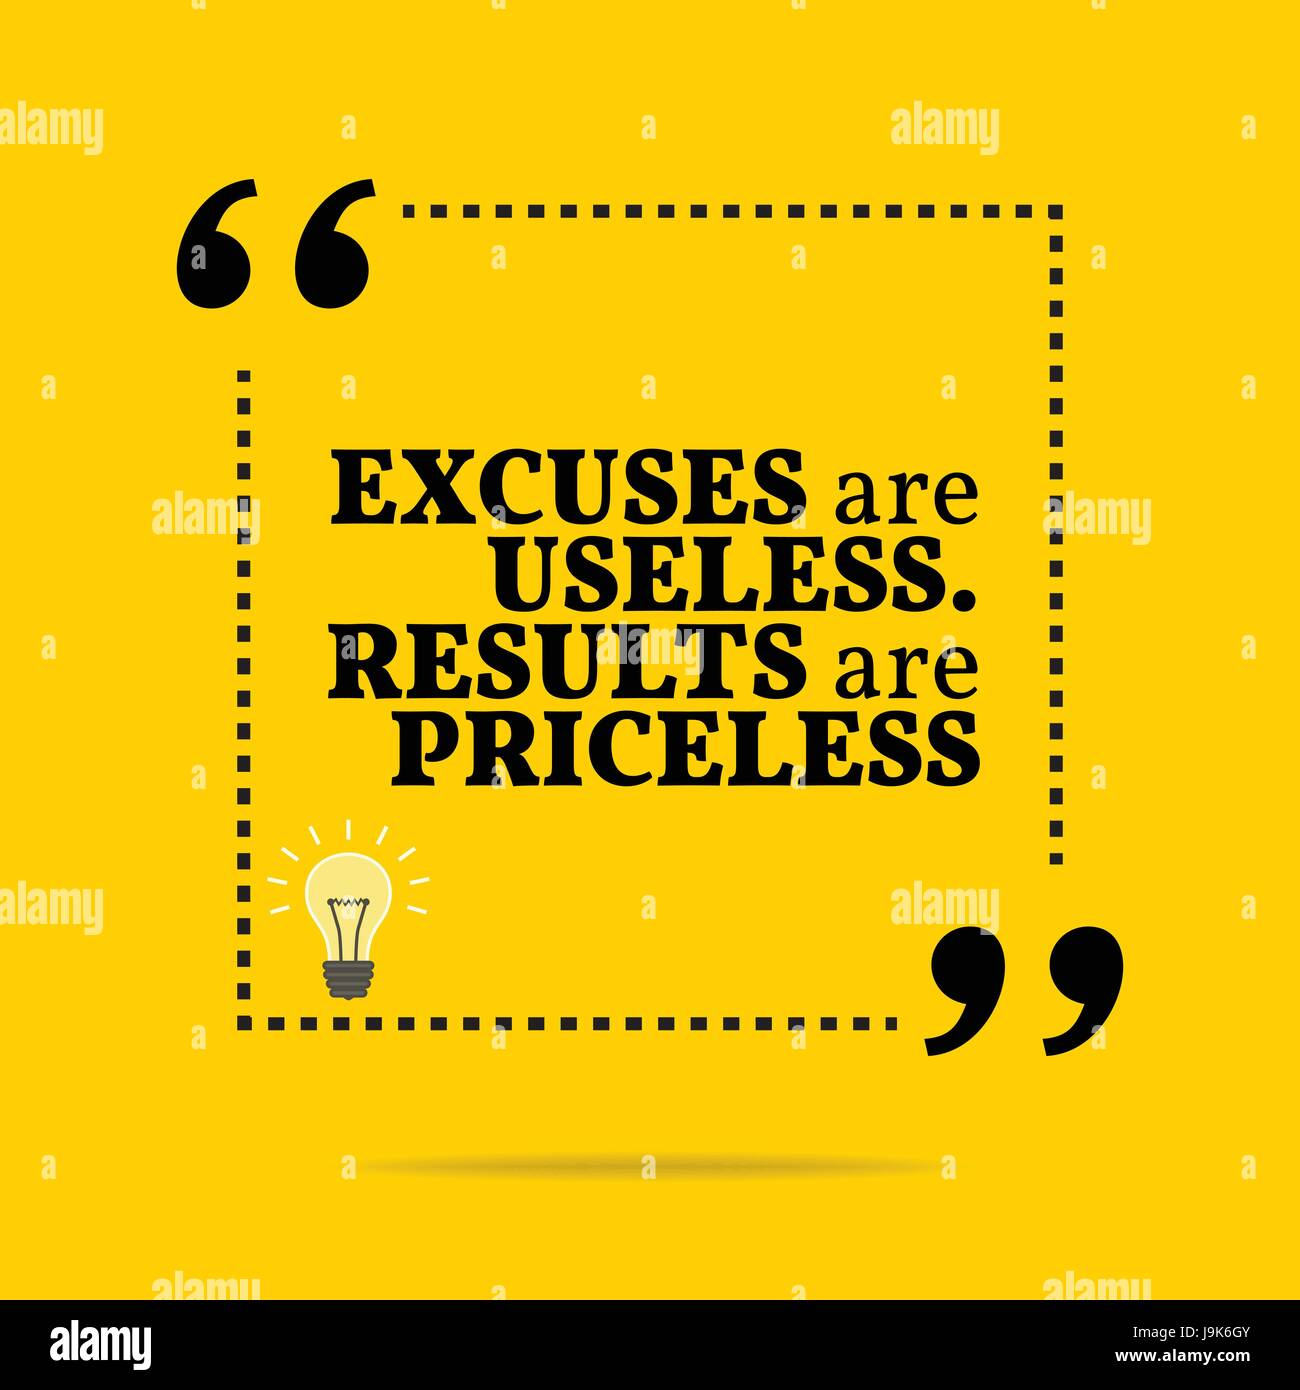 7a2452694ae4 Inspirational motivational quote. Excuses are useless. Results are priceless.  Simple trendy design.